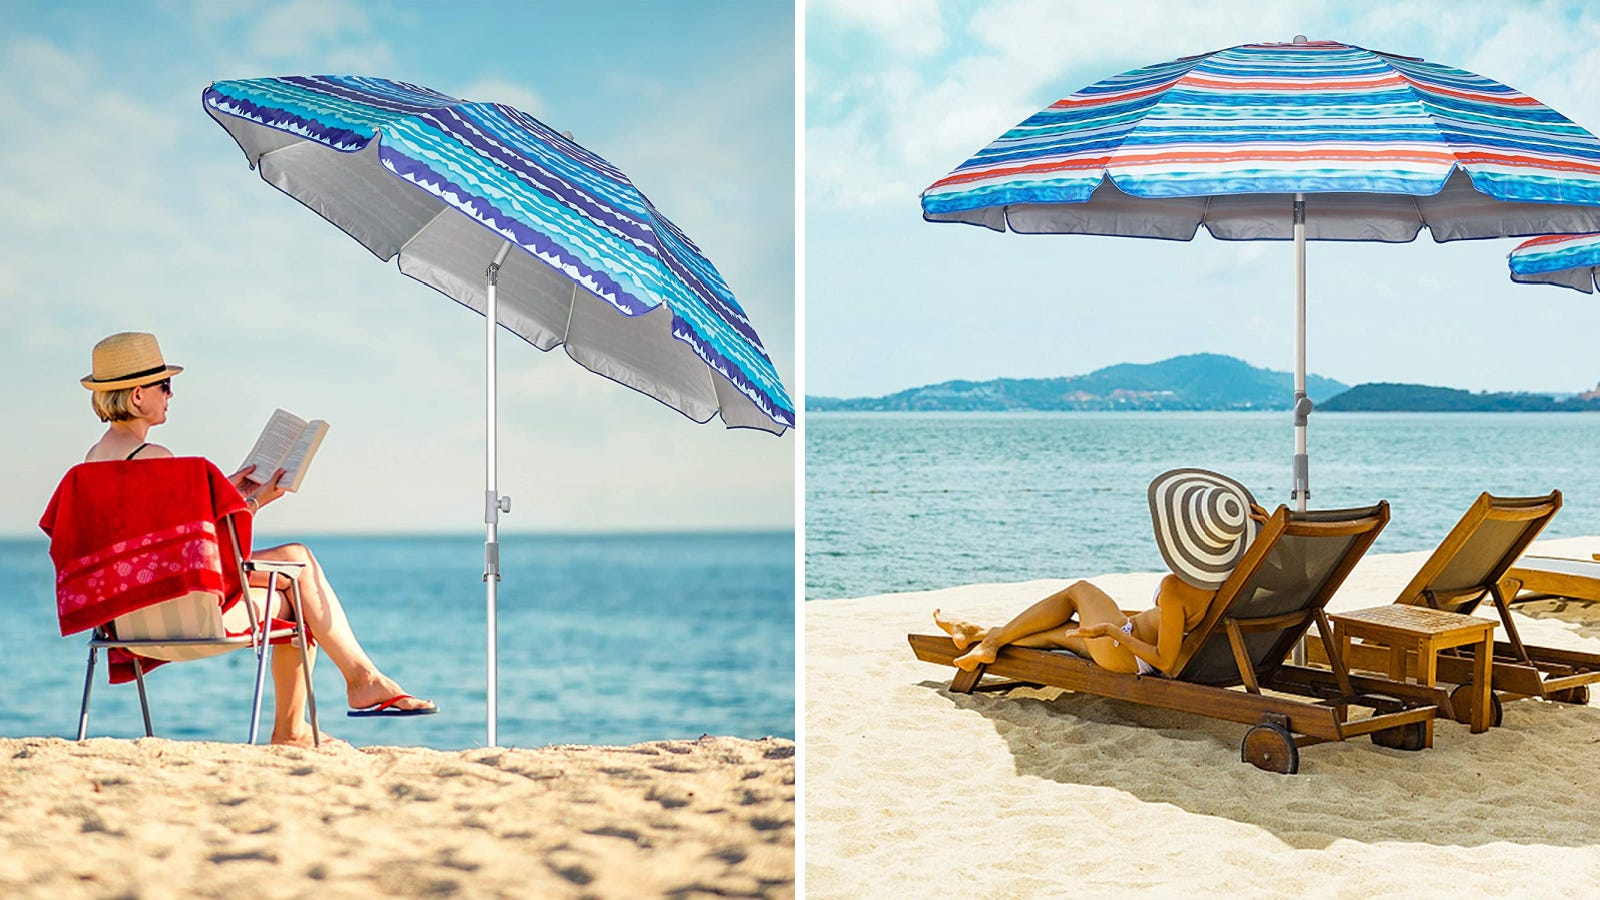 Two images of women enjoying a warm day on the beach, catching shade with the Blissun beach umbrella.